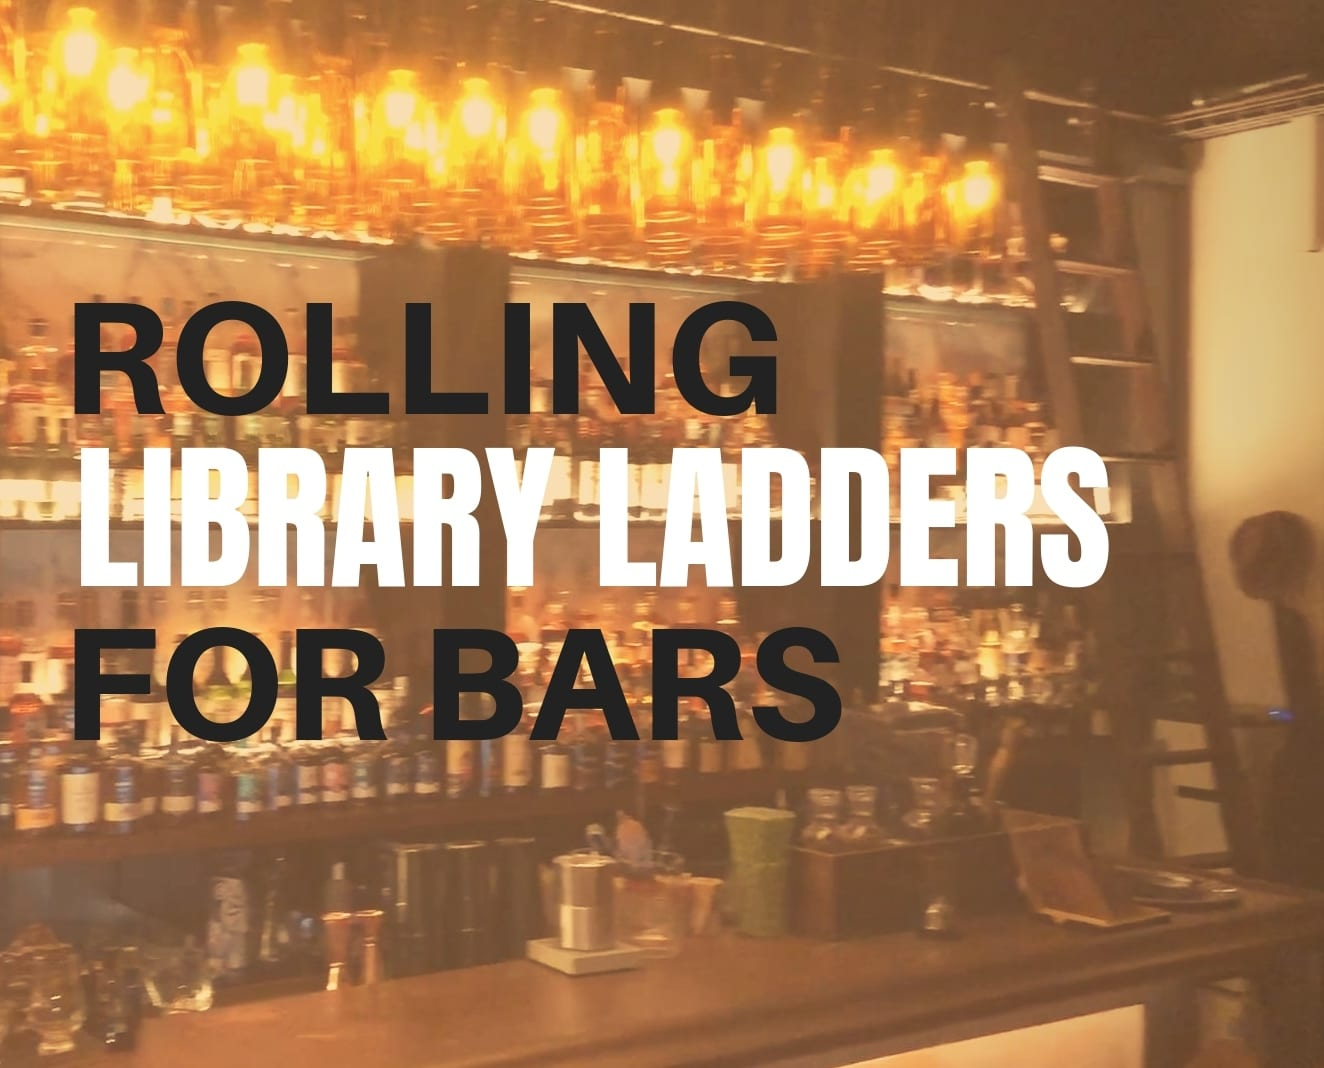 ROLLING-LIBRARY-LADDERS-FOR-BARS-TN